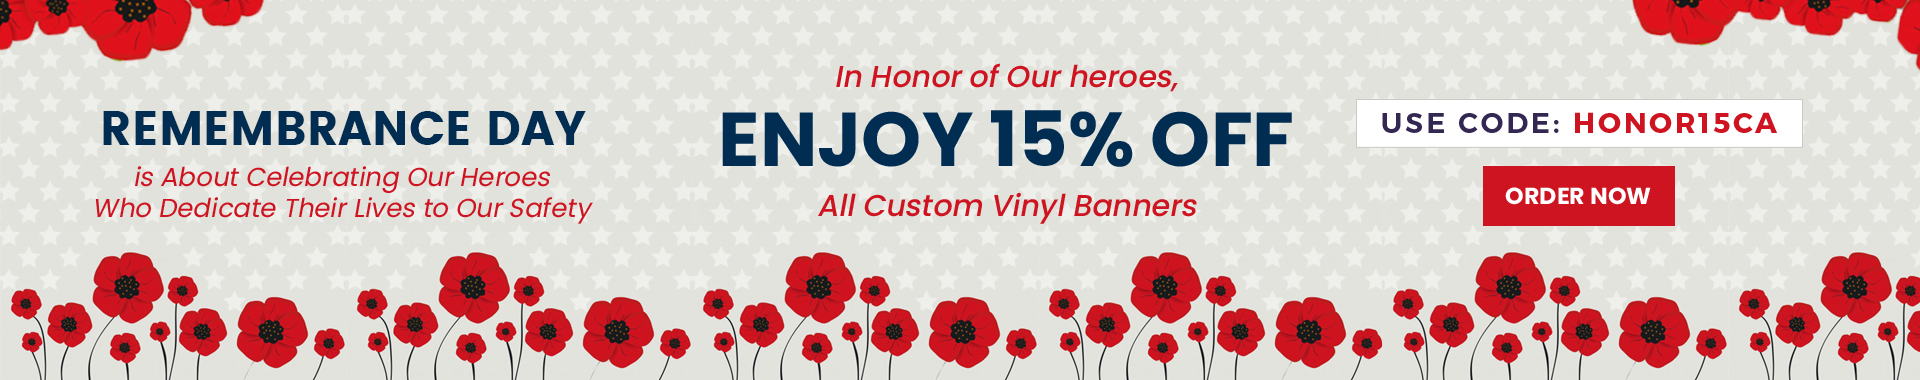 15% off All Custom Vinyl Banners for Remembrance Day